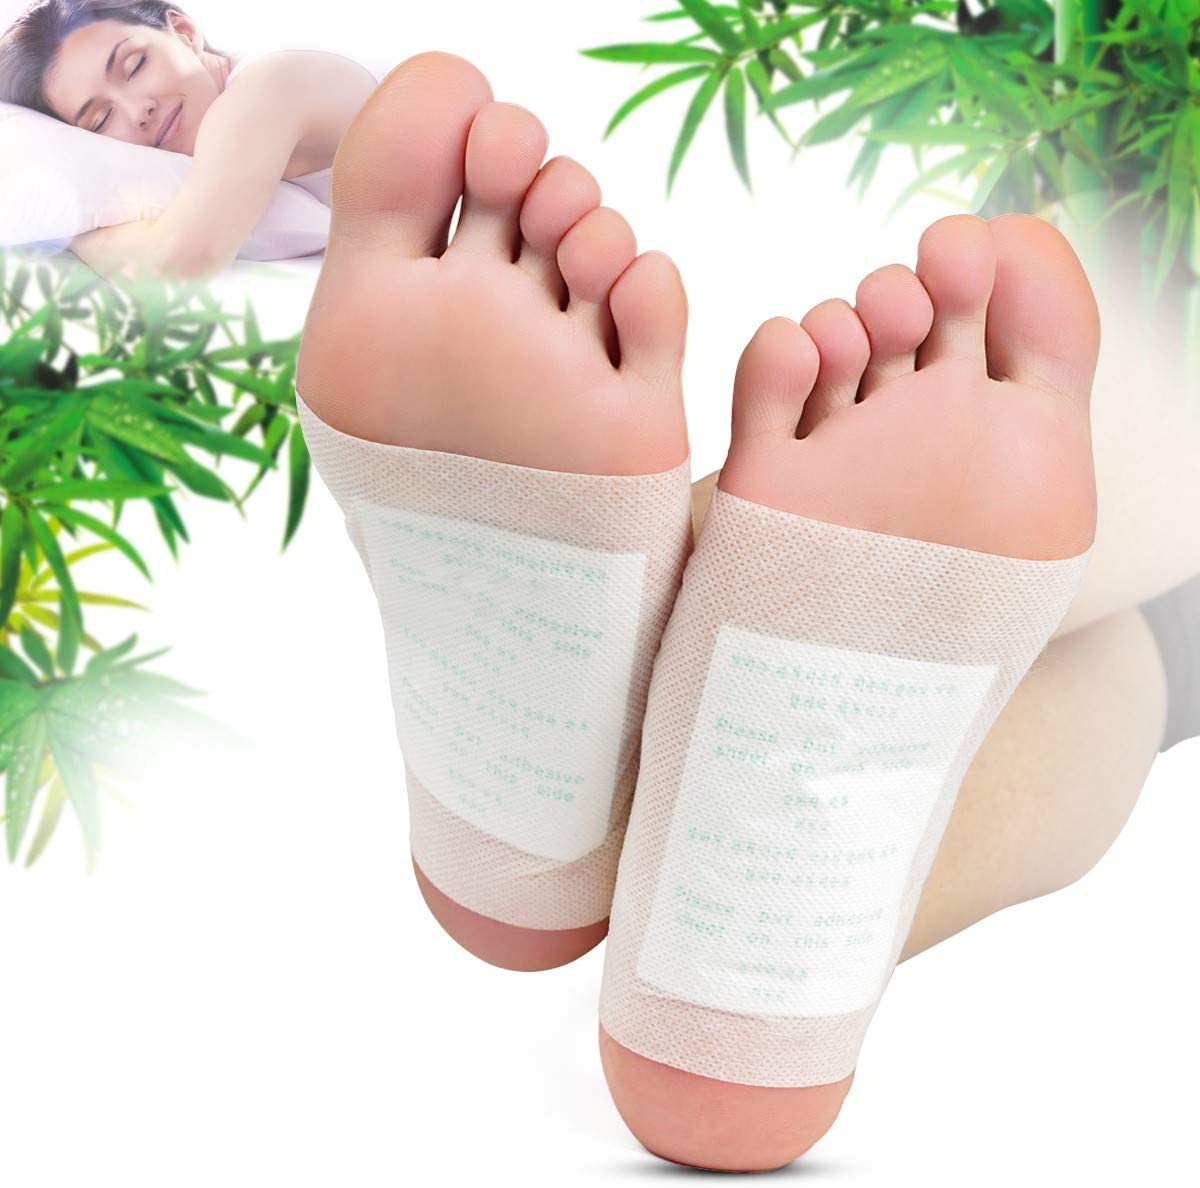 Relief Foot Pads, Adhesive Sheets for Removing Impurities CookingOrbit